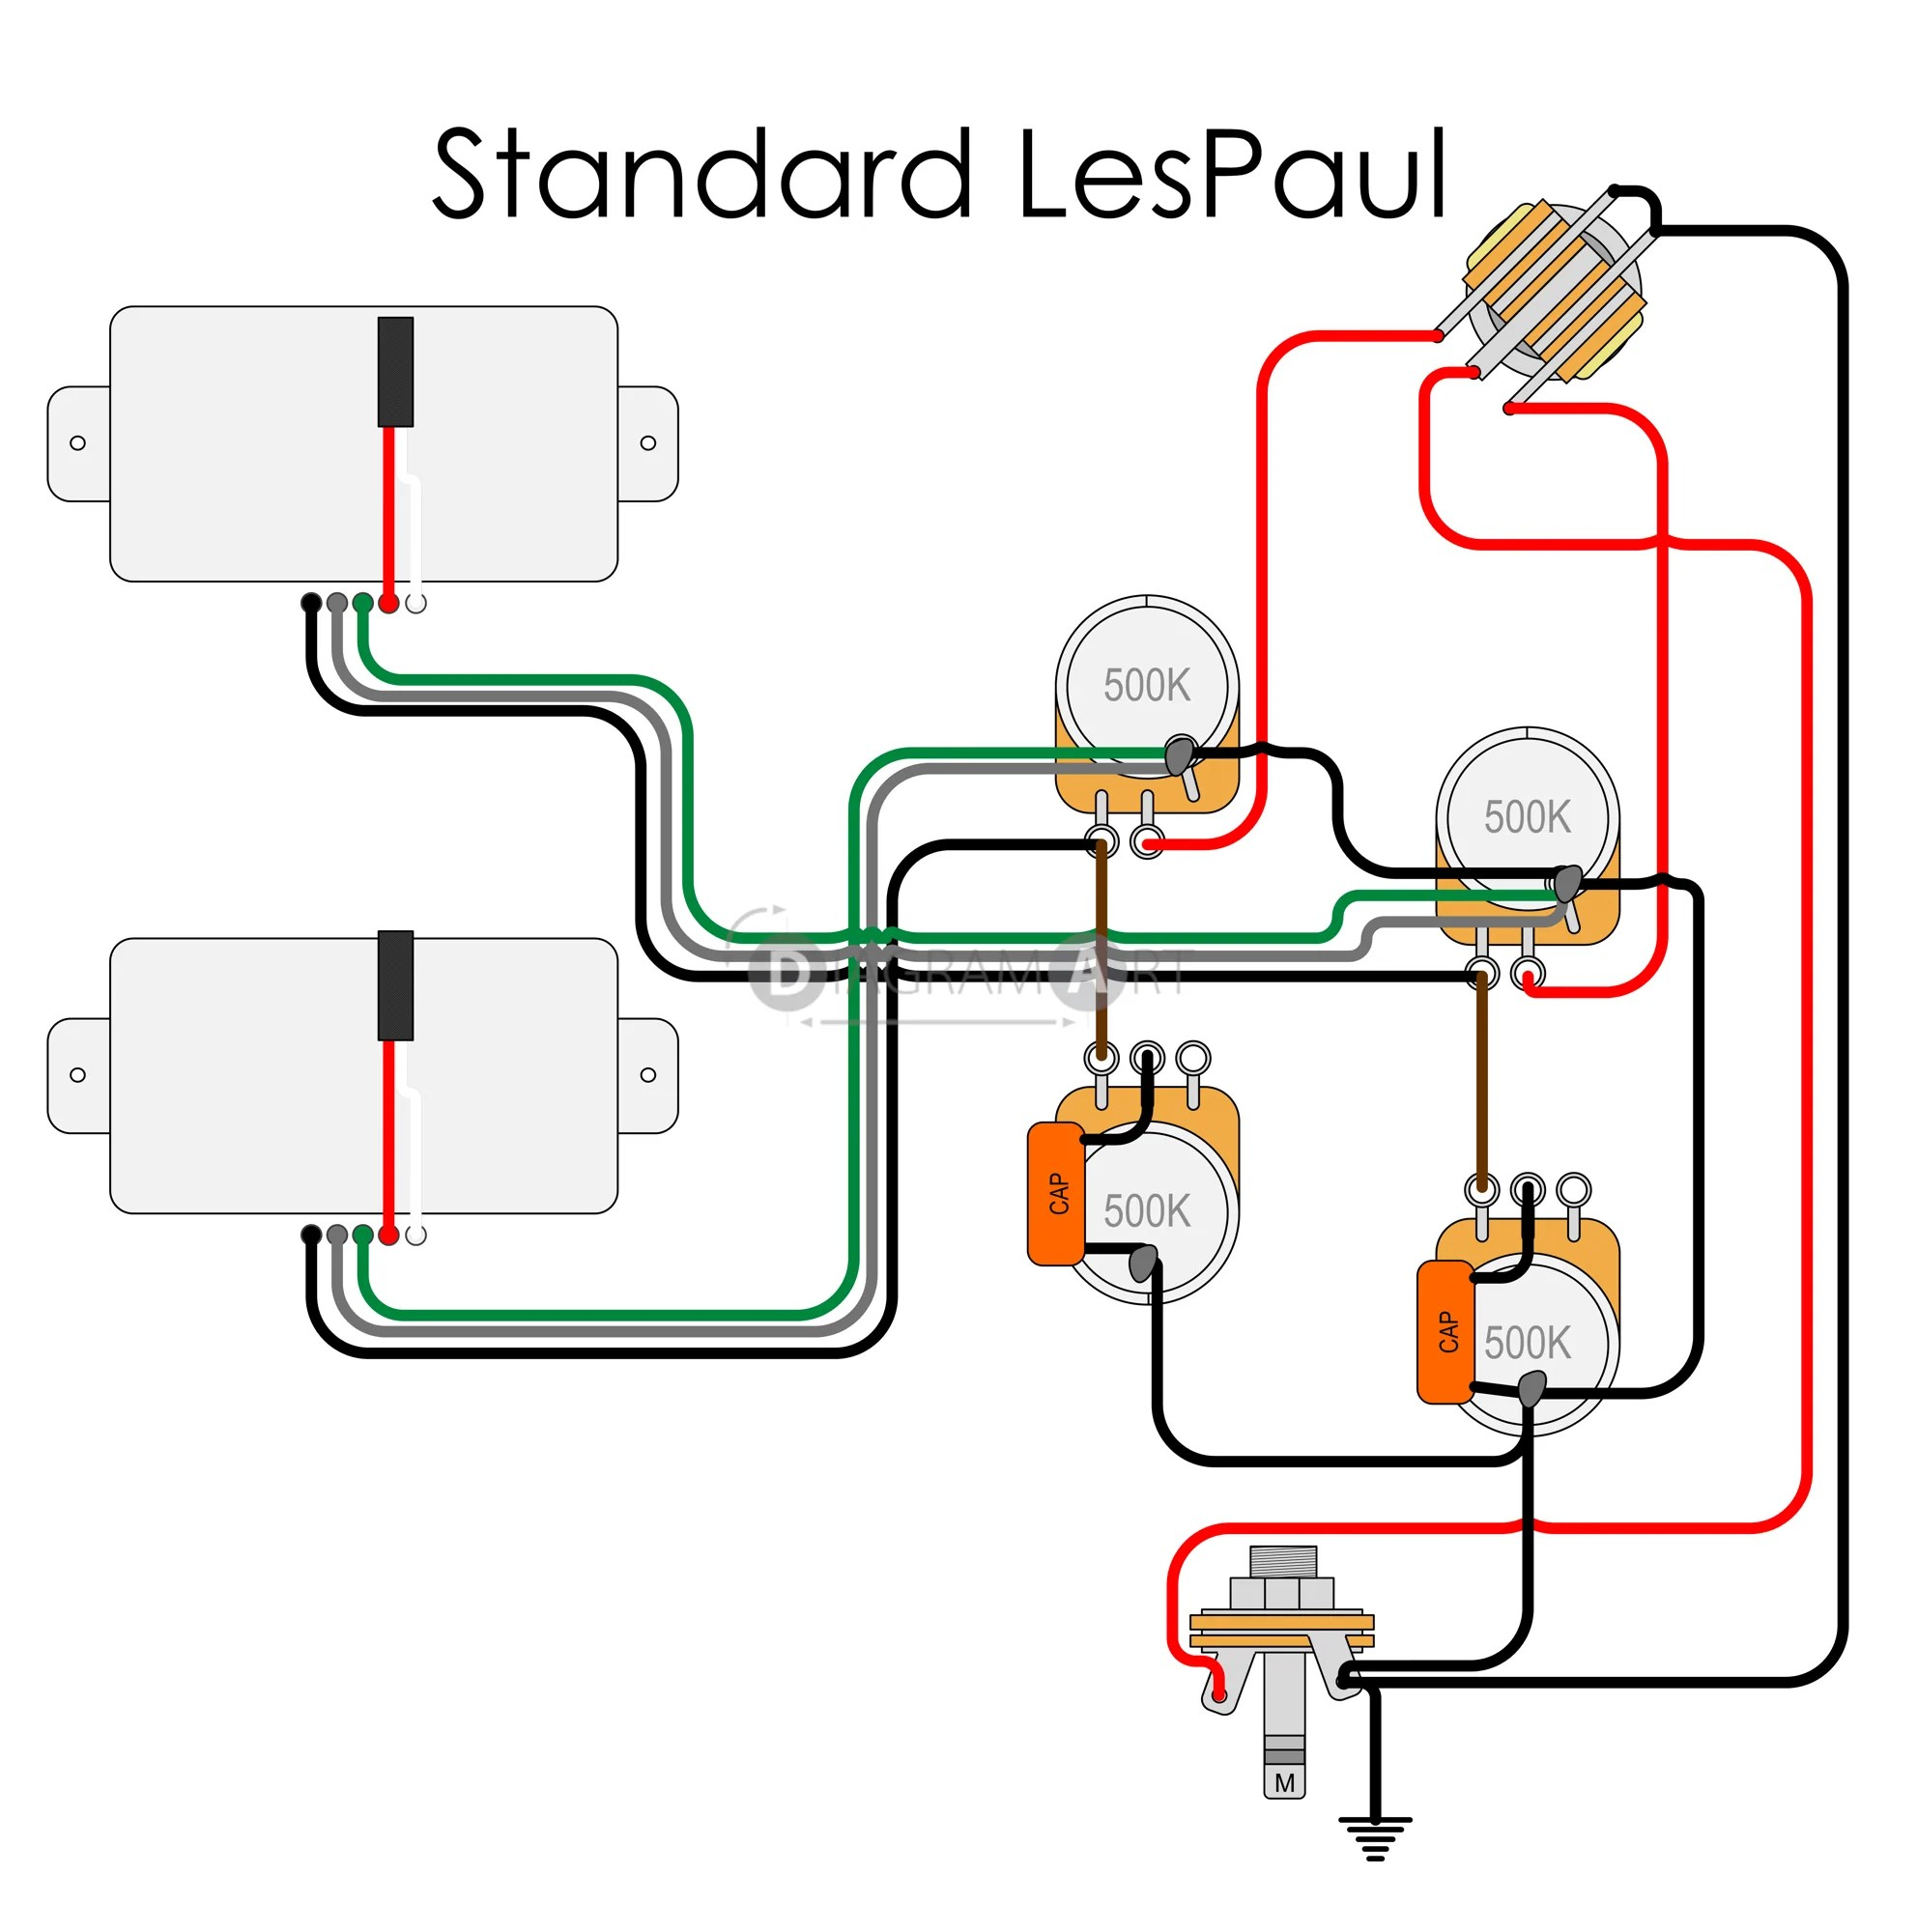 medium resolution of standard les paul wiring diagram wiring diagram expert les paul wiring diagram les paul pro wiring diagram